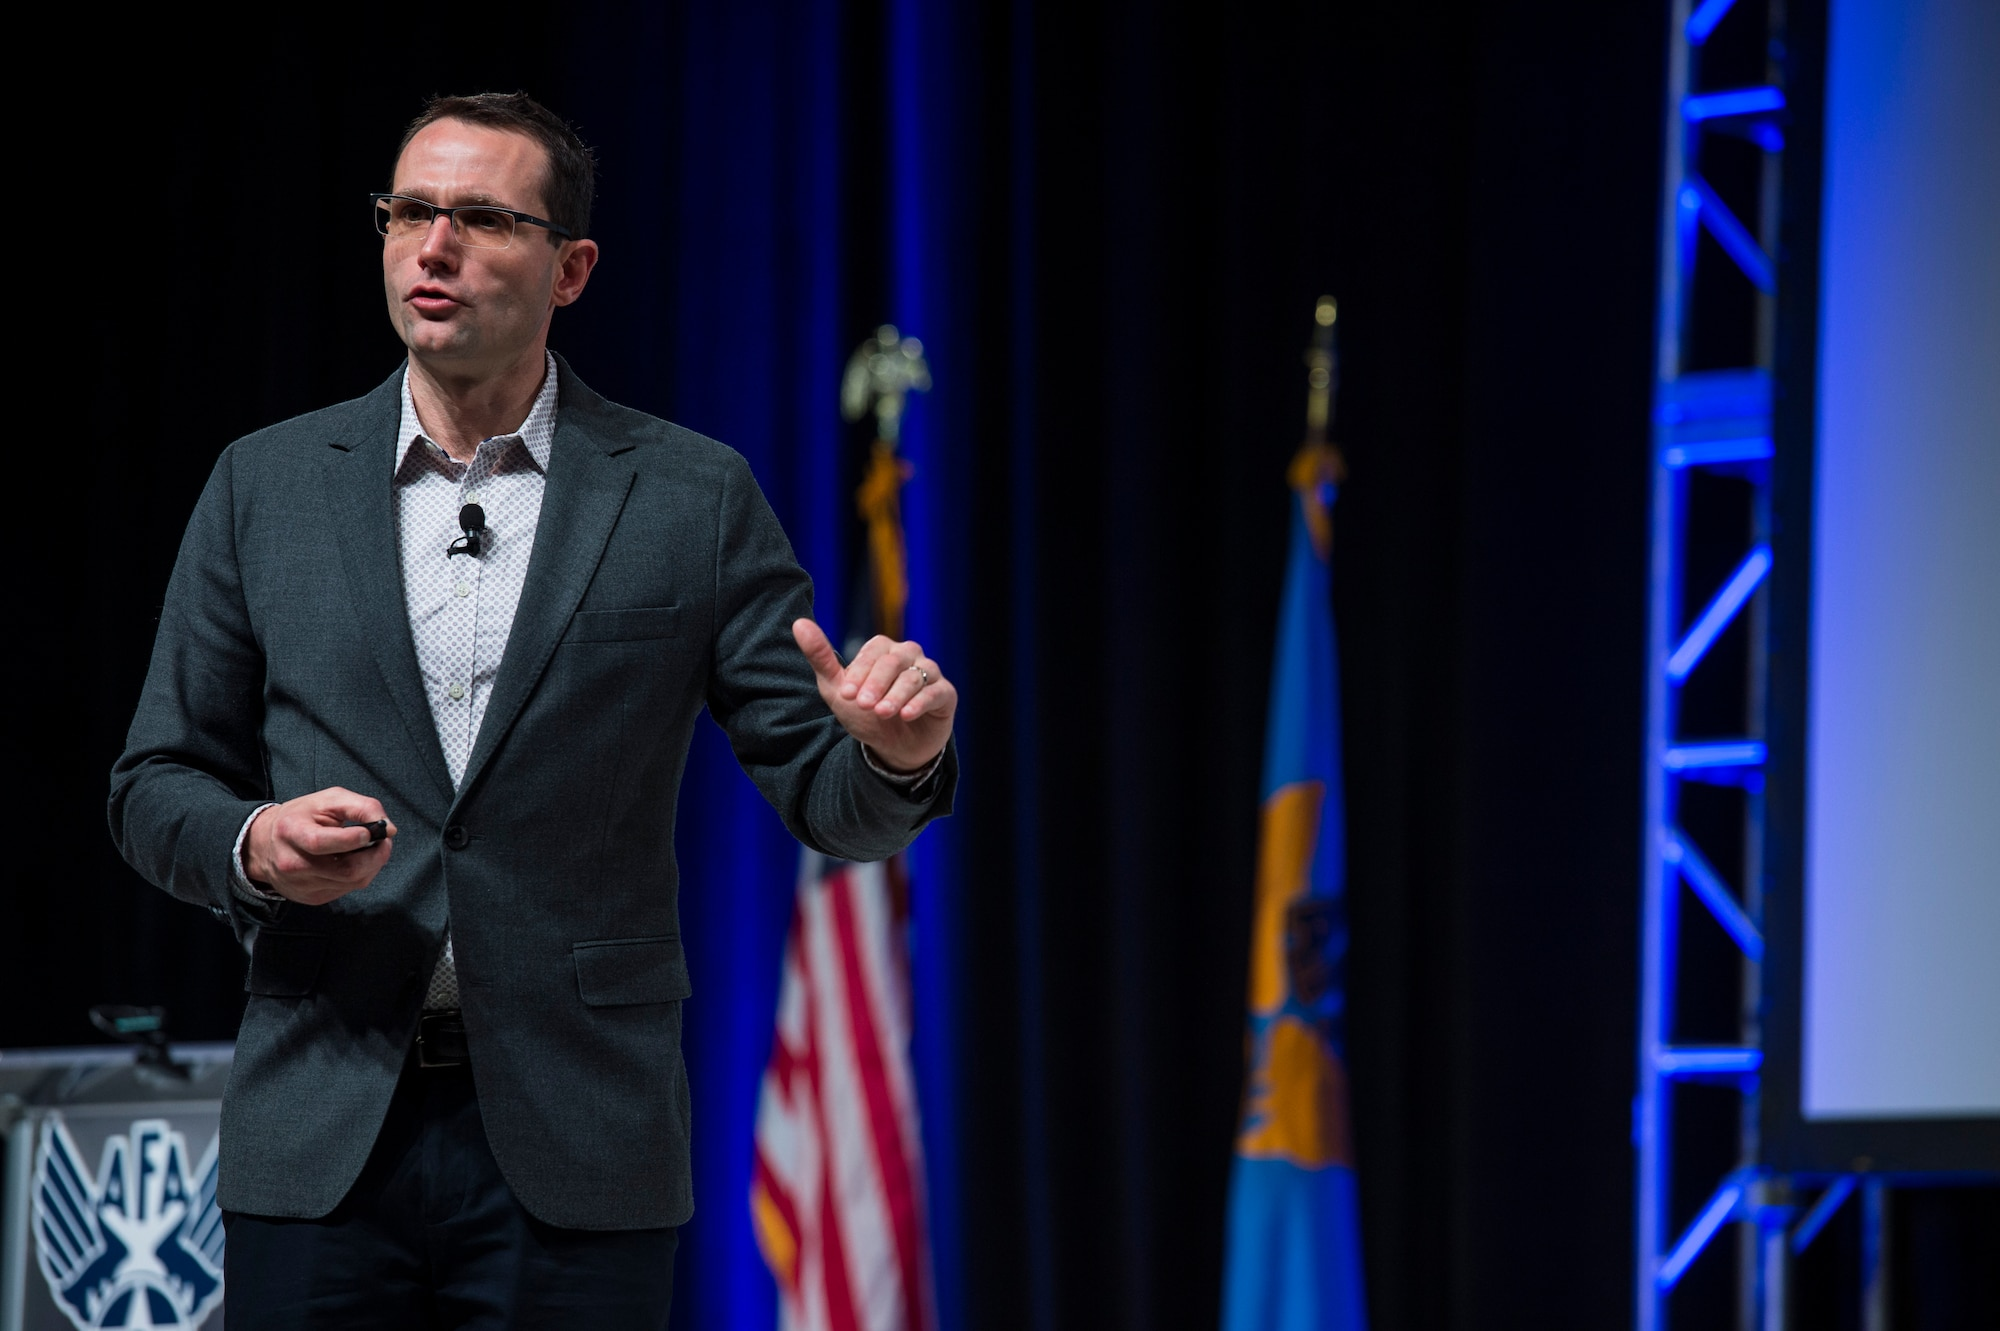 """Dr. Will Roper, assistant secretary of the Air Force for acquisition, technology and logistics, discusses """"Fielding Tomorrow's Air Force Faster and Smarter,"""" during the Air Force Association's Air Warfare Symposium in Orlando, Fla., Feb. 27, 2019. (U.S. Air Force photo by Tech. Sgt. DeAndre Curtiss)"""